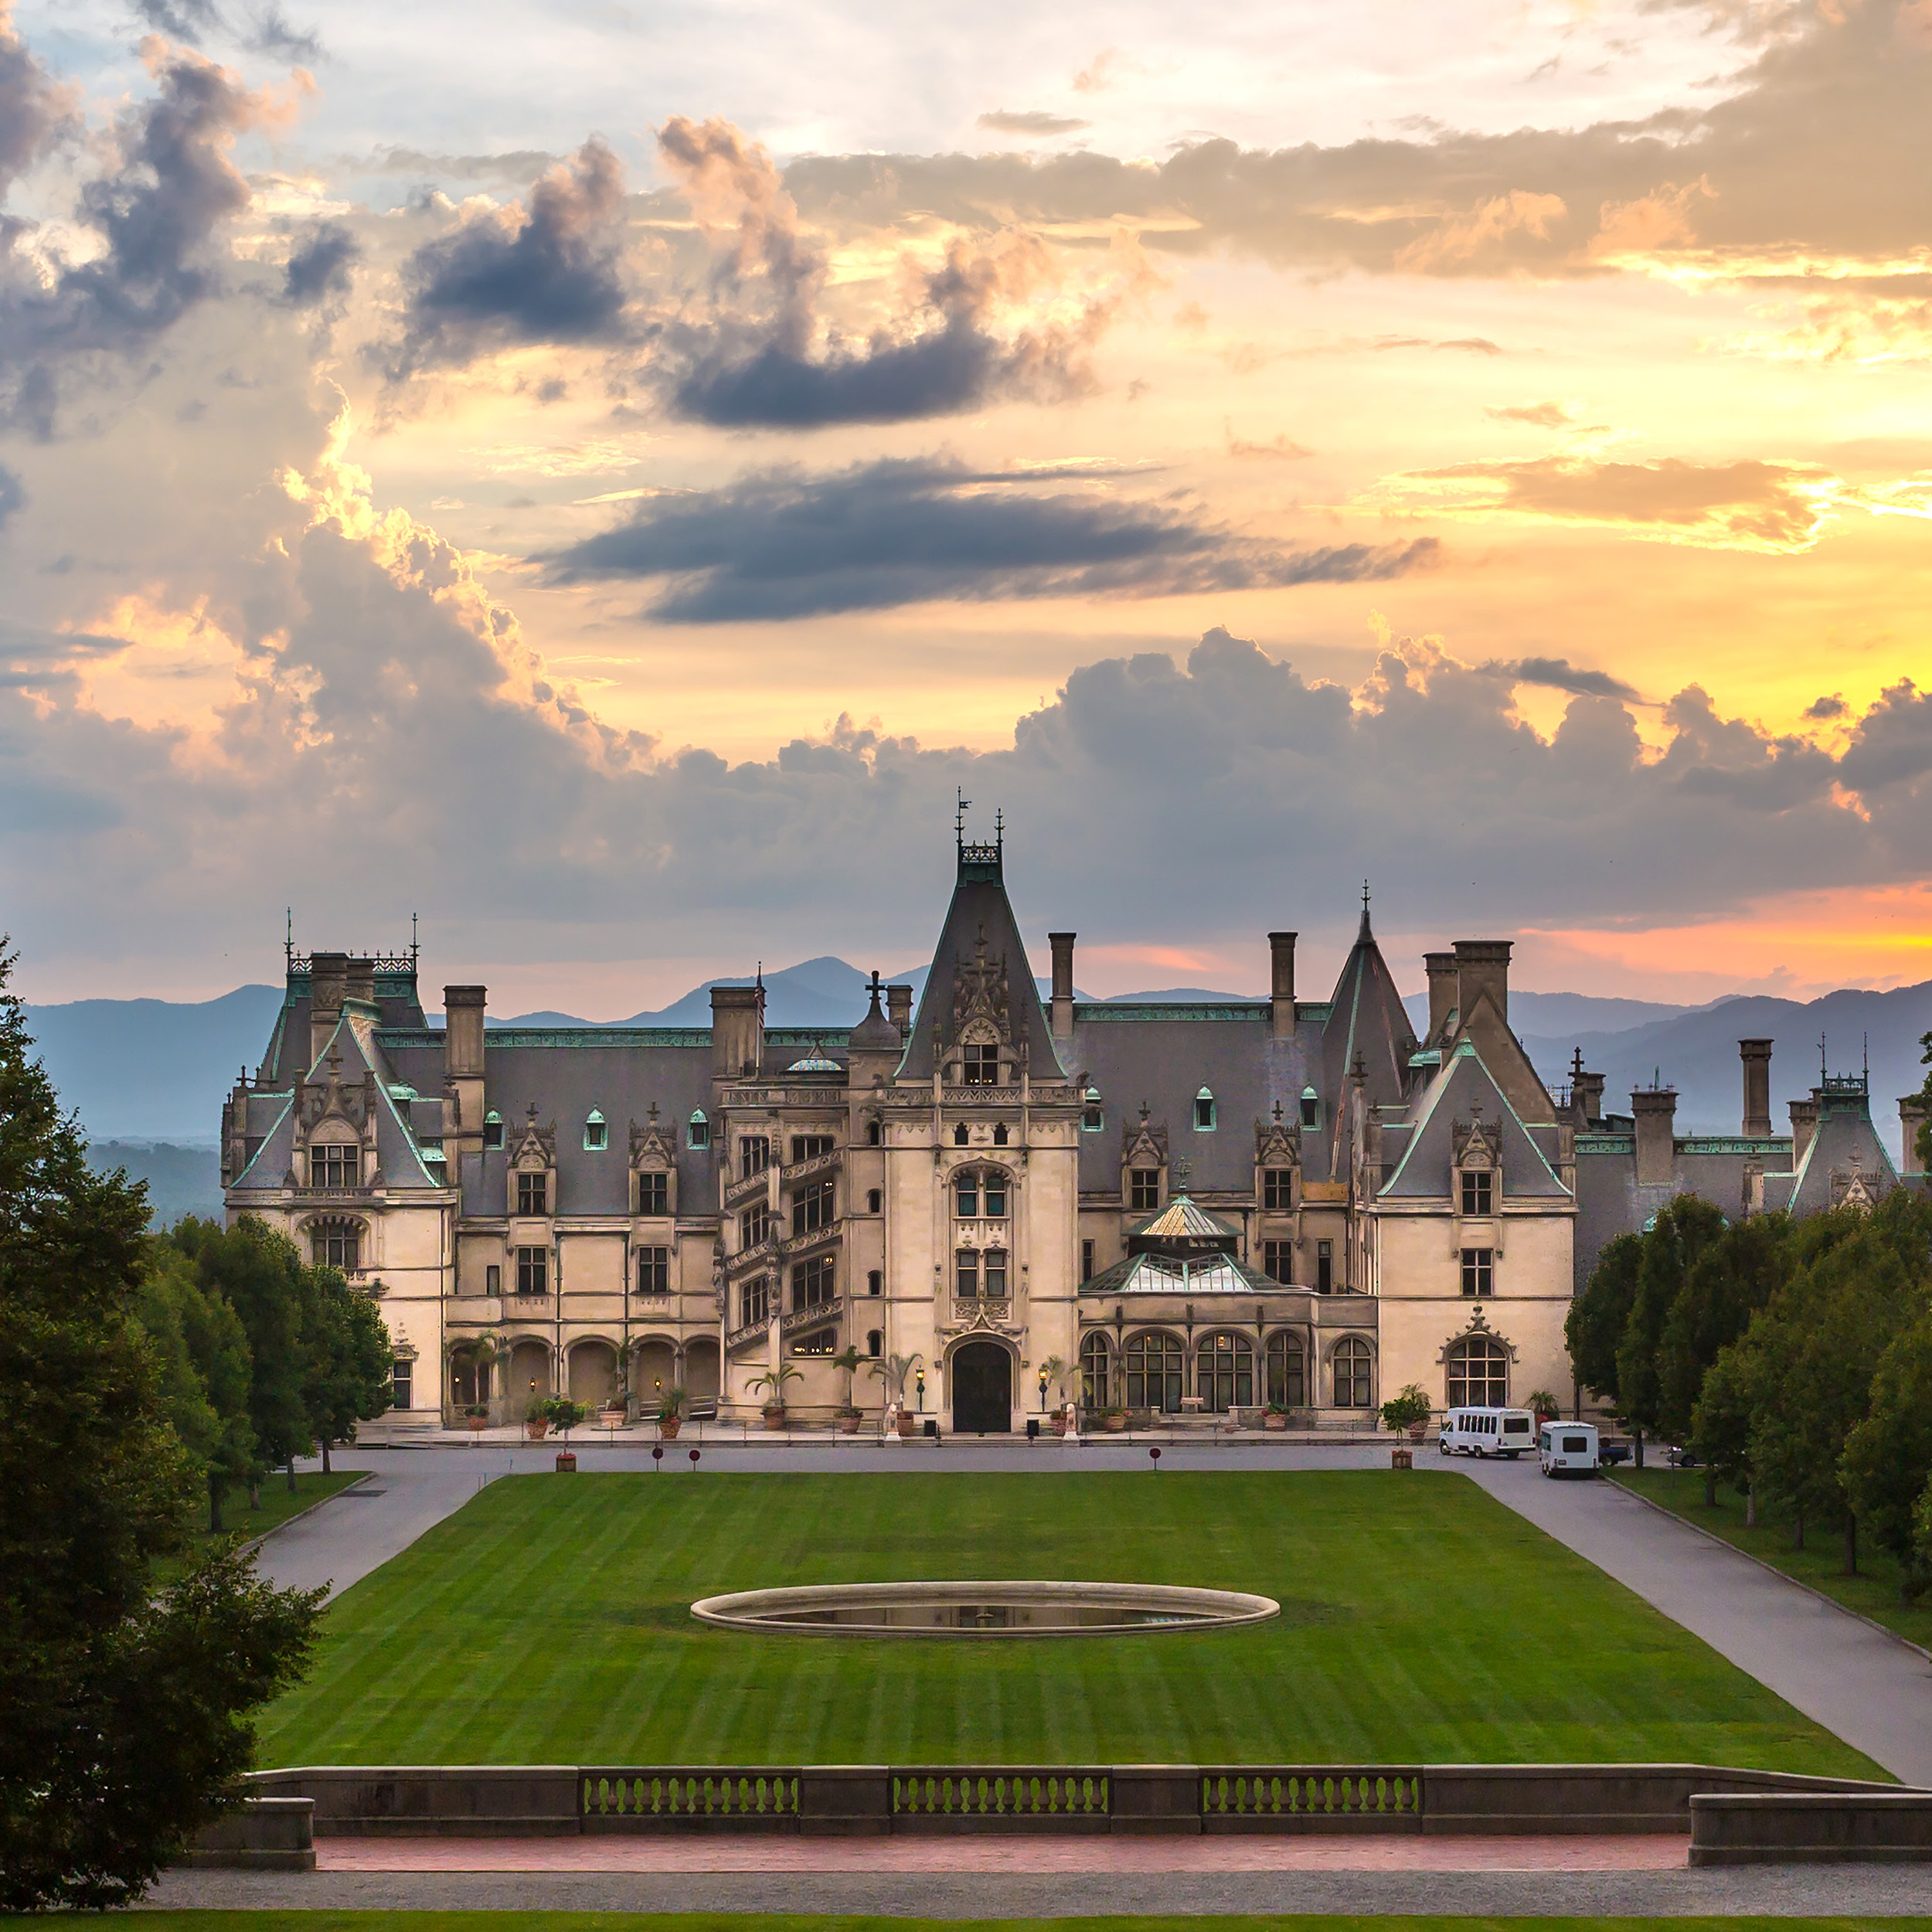 The Biltmore Estate: America's Downton Abbey